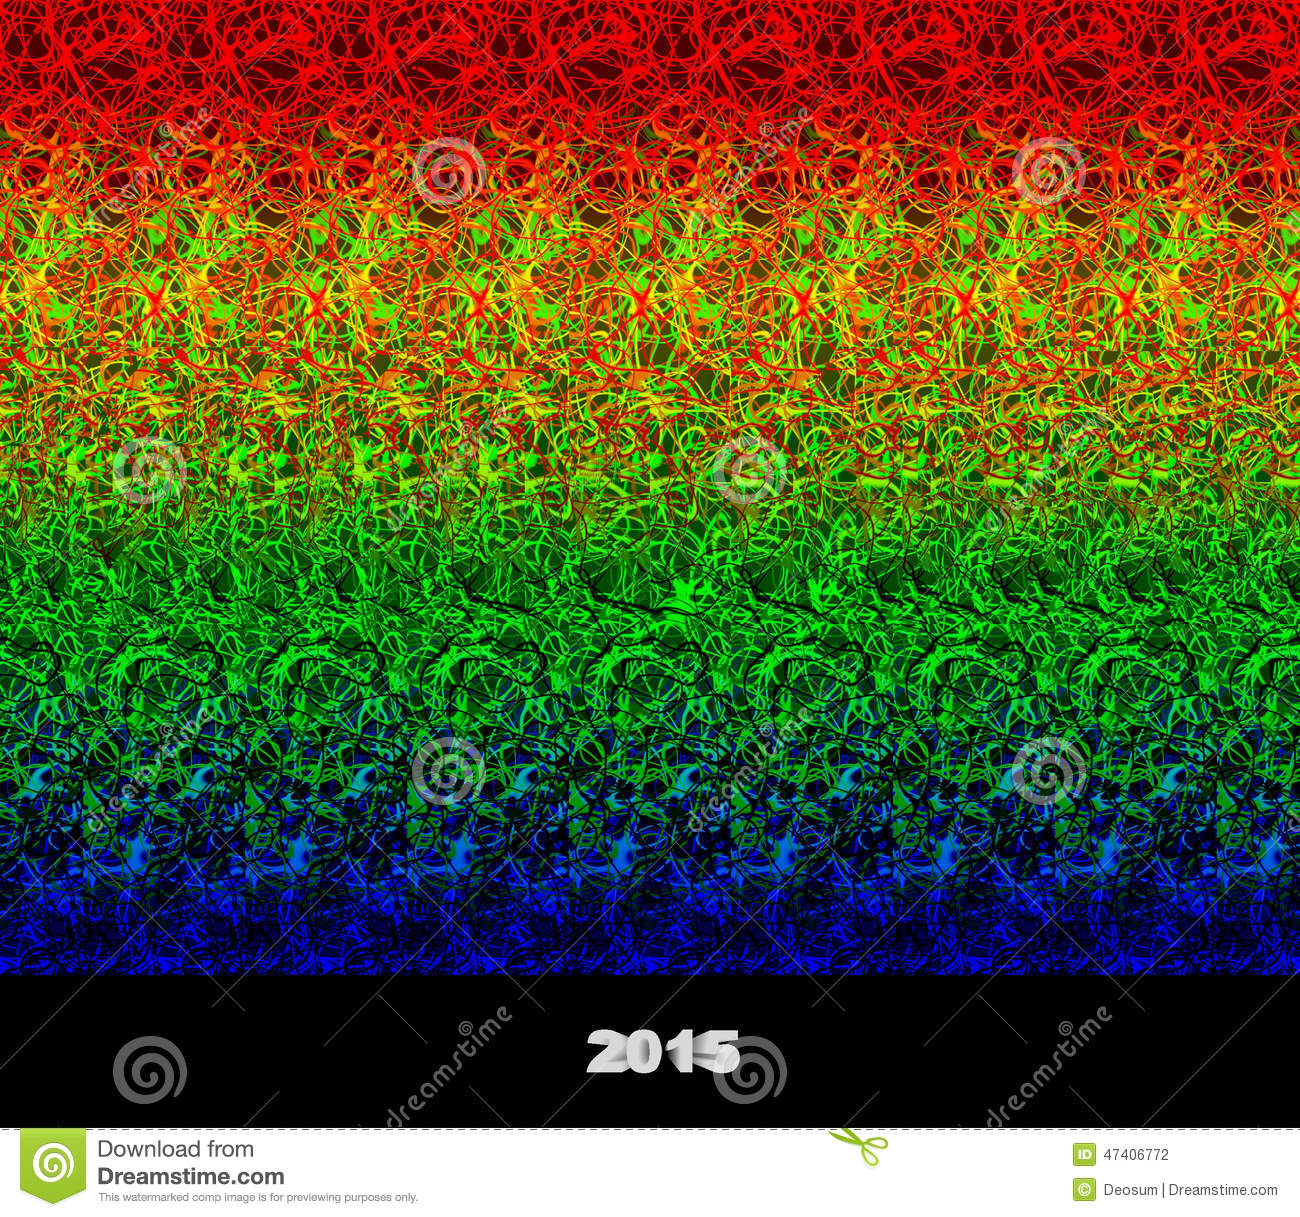 3d Stereograms Wallpaper 2015 Stereogram Illusion Of A 3d Image Stock